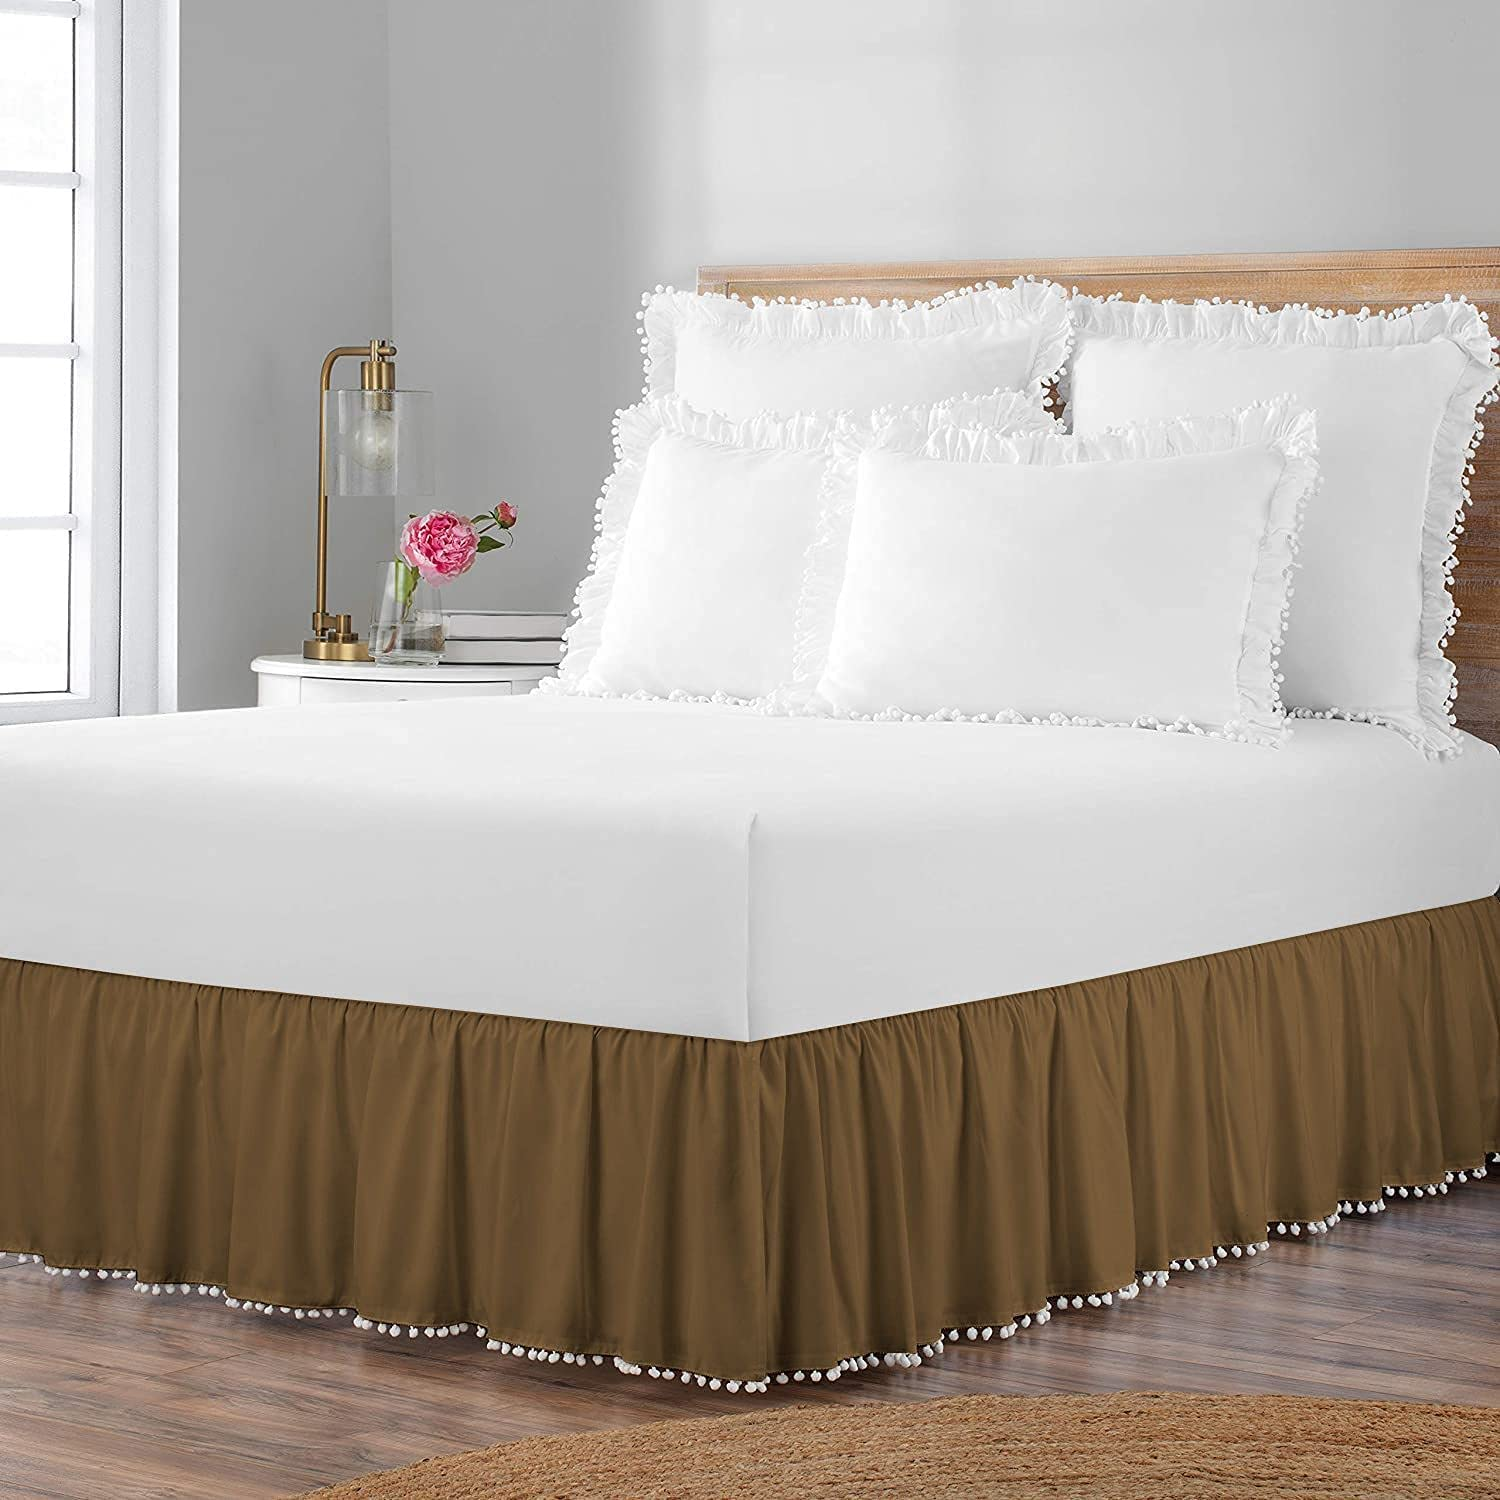 Special price for a limited time International Sheets Purchase Pom Ruffle BedSkirt Egyptian 100% Cotto